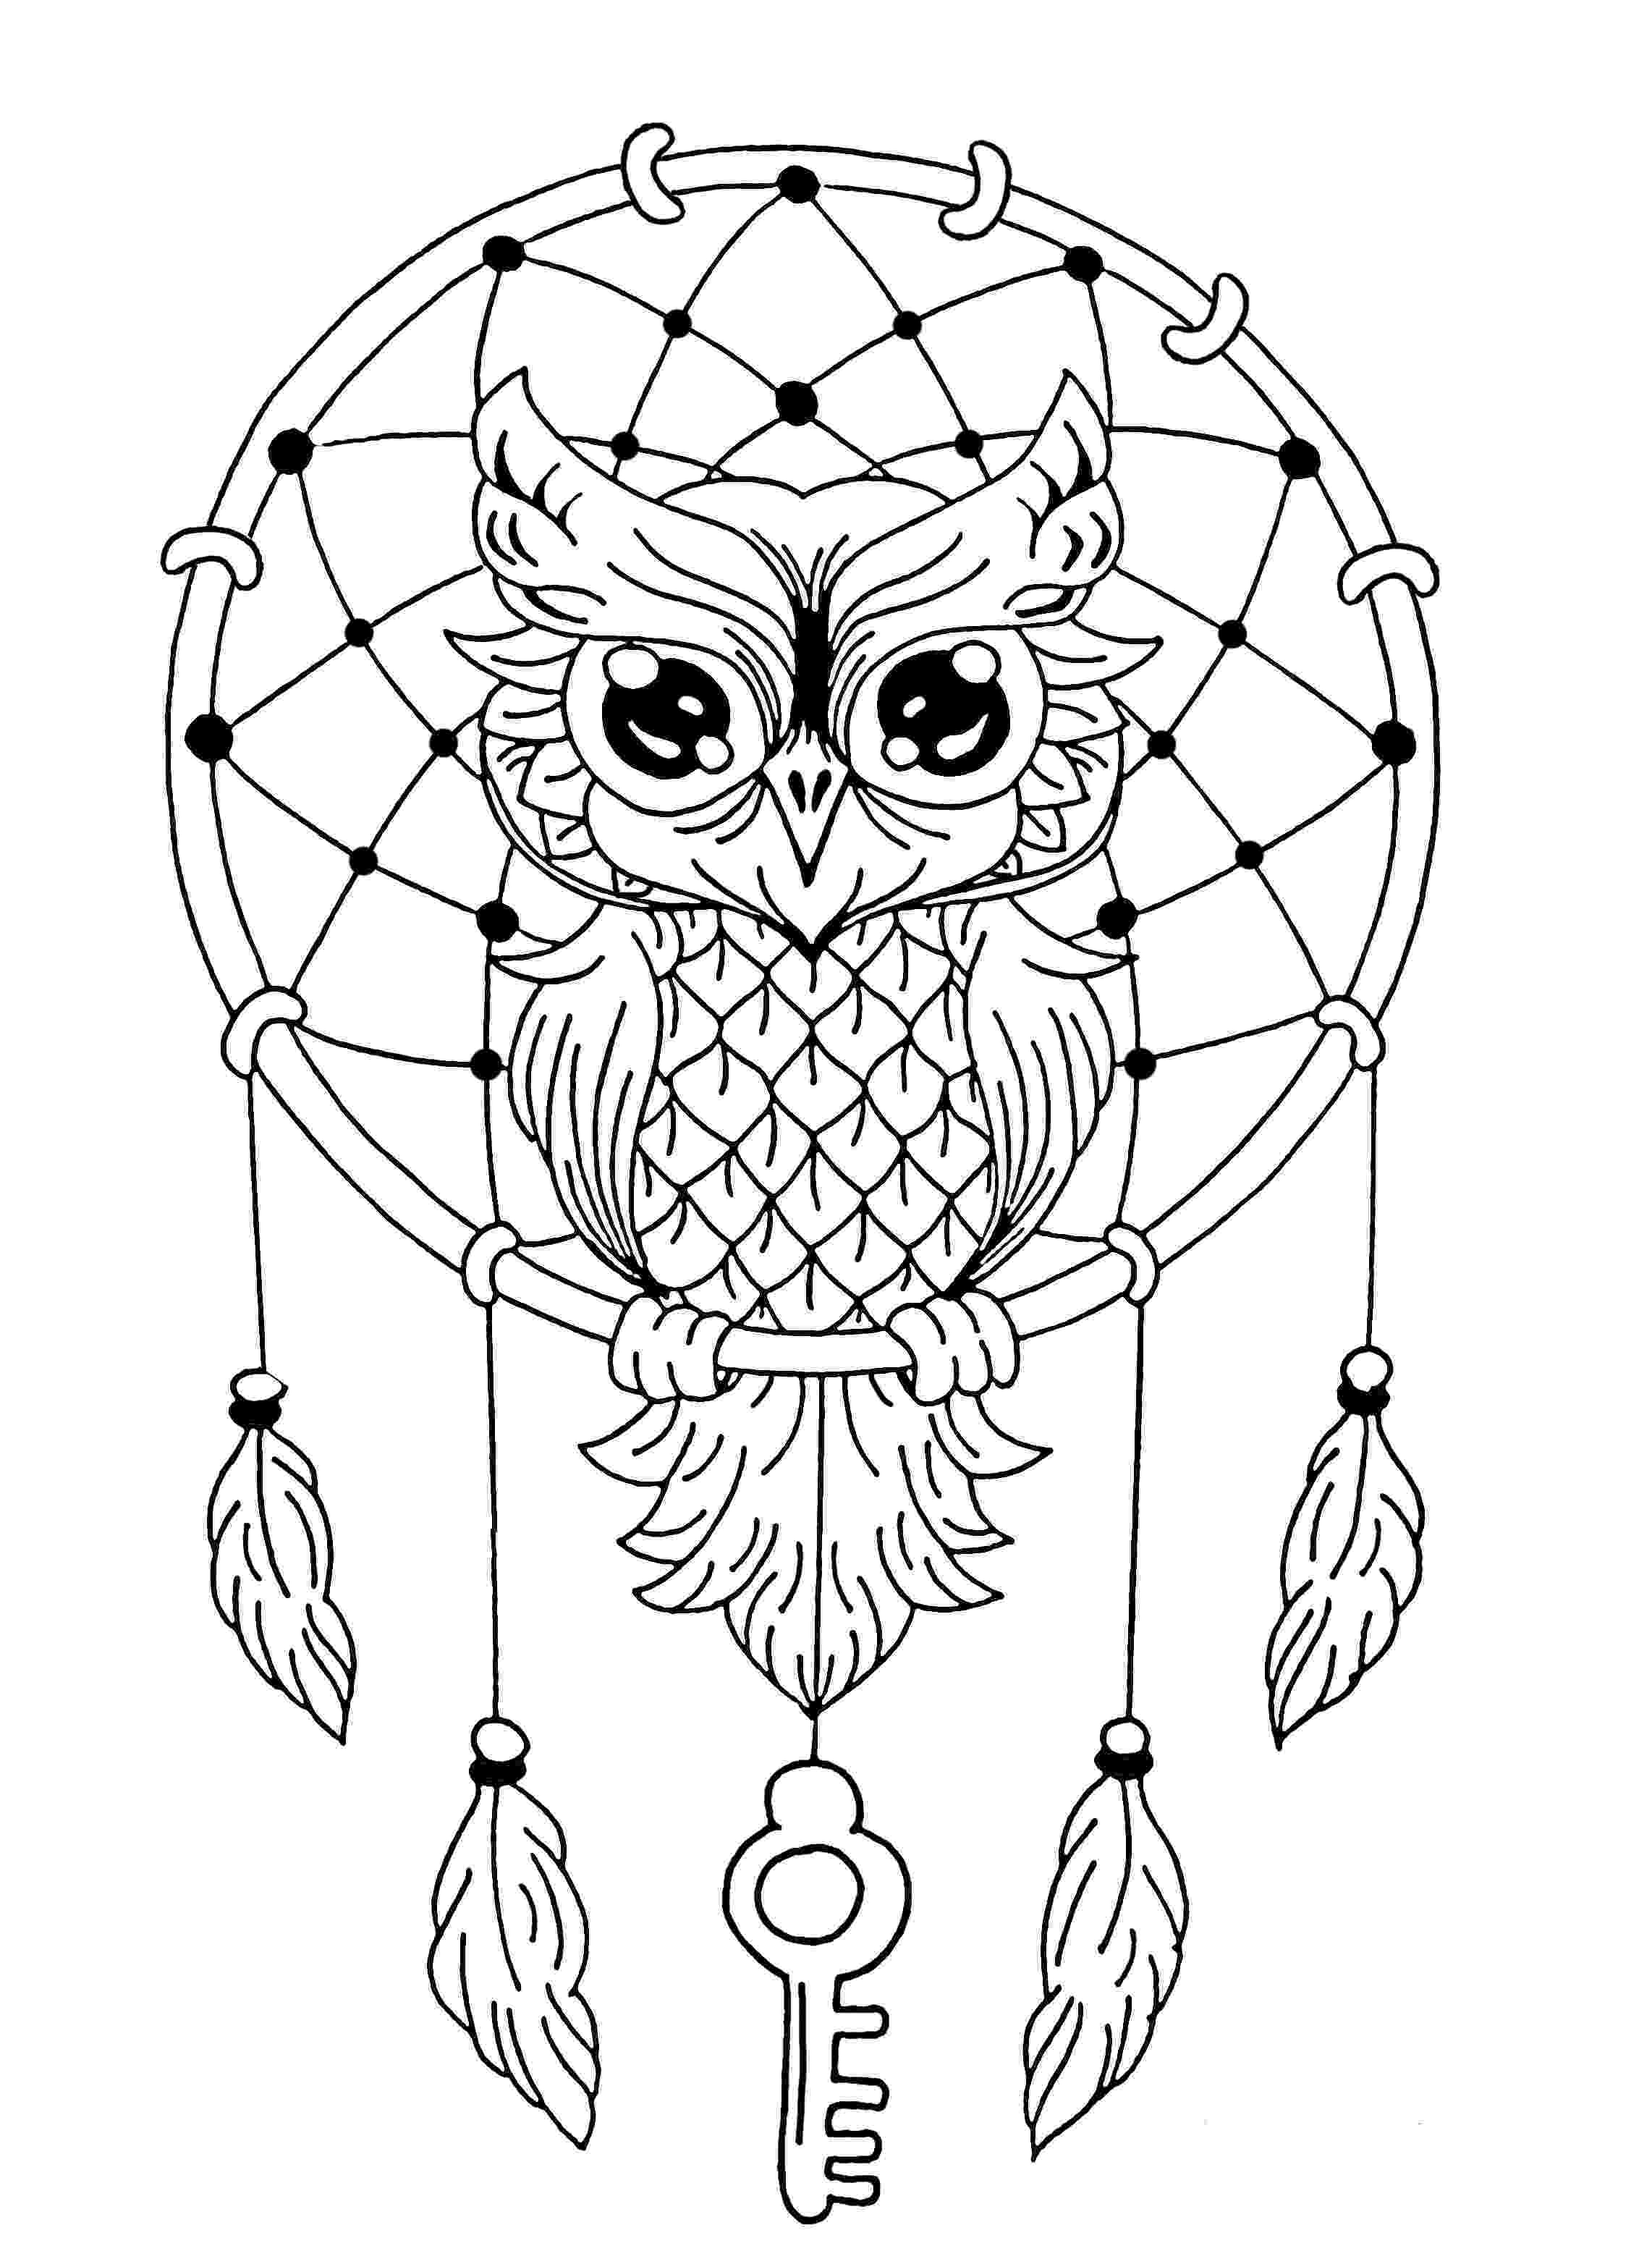 owl coloring sheet owl coloring pages print free printable cute owl coloring coloring sheet owl